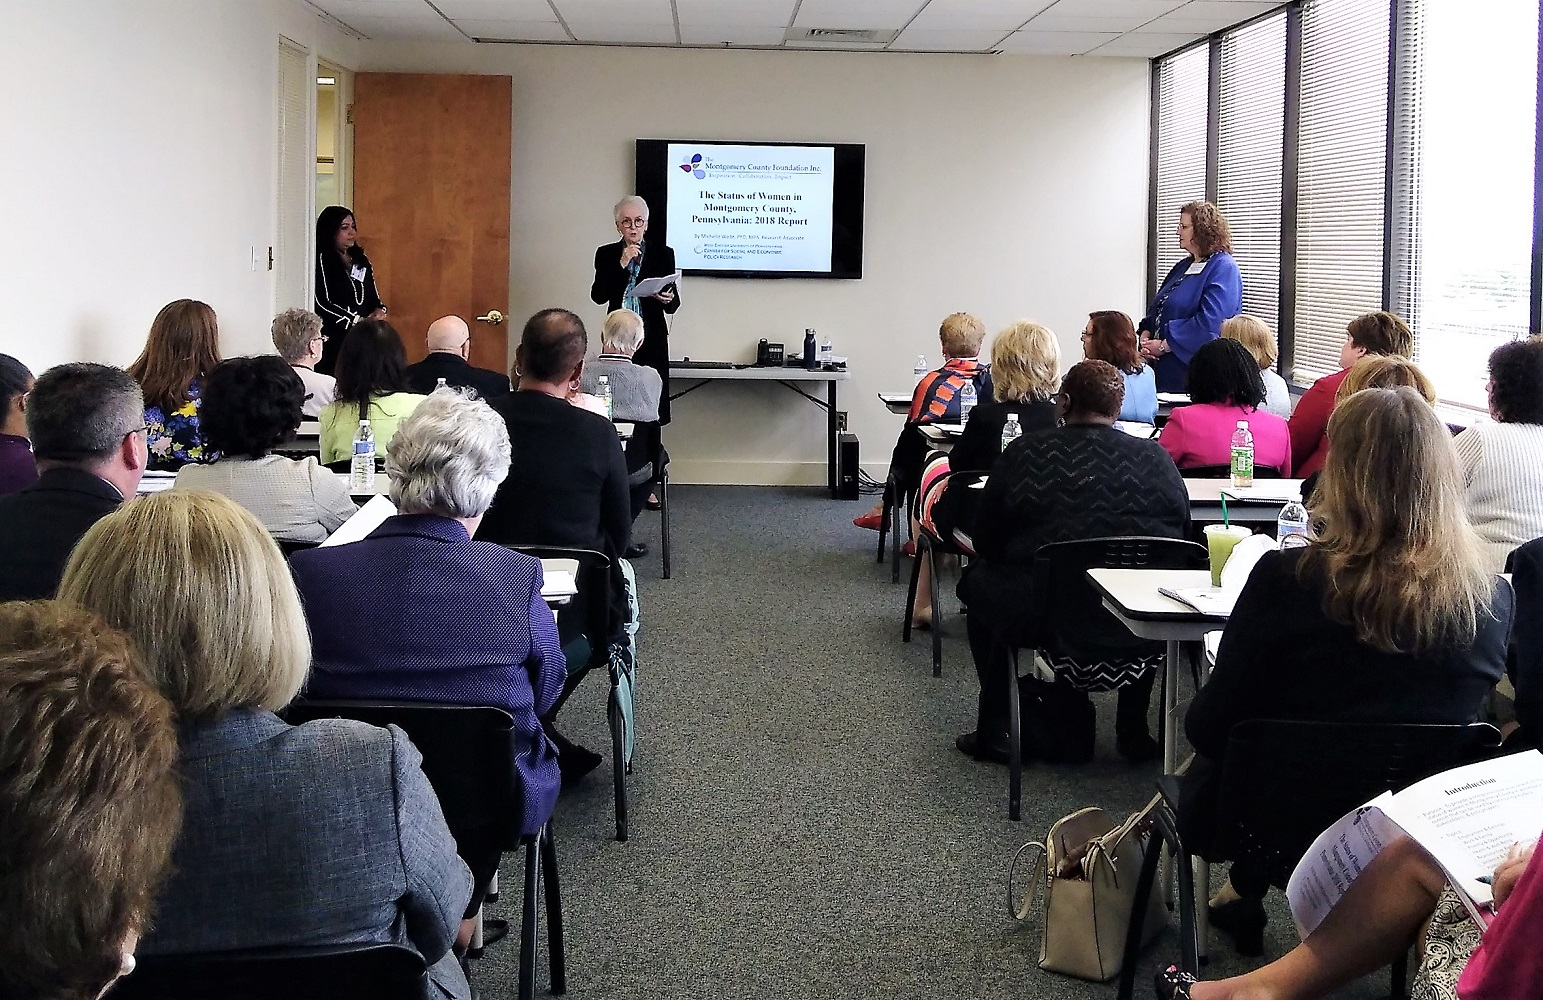 Montgomery County Foundation launches report on women's status